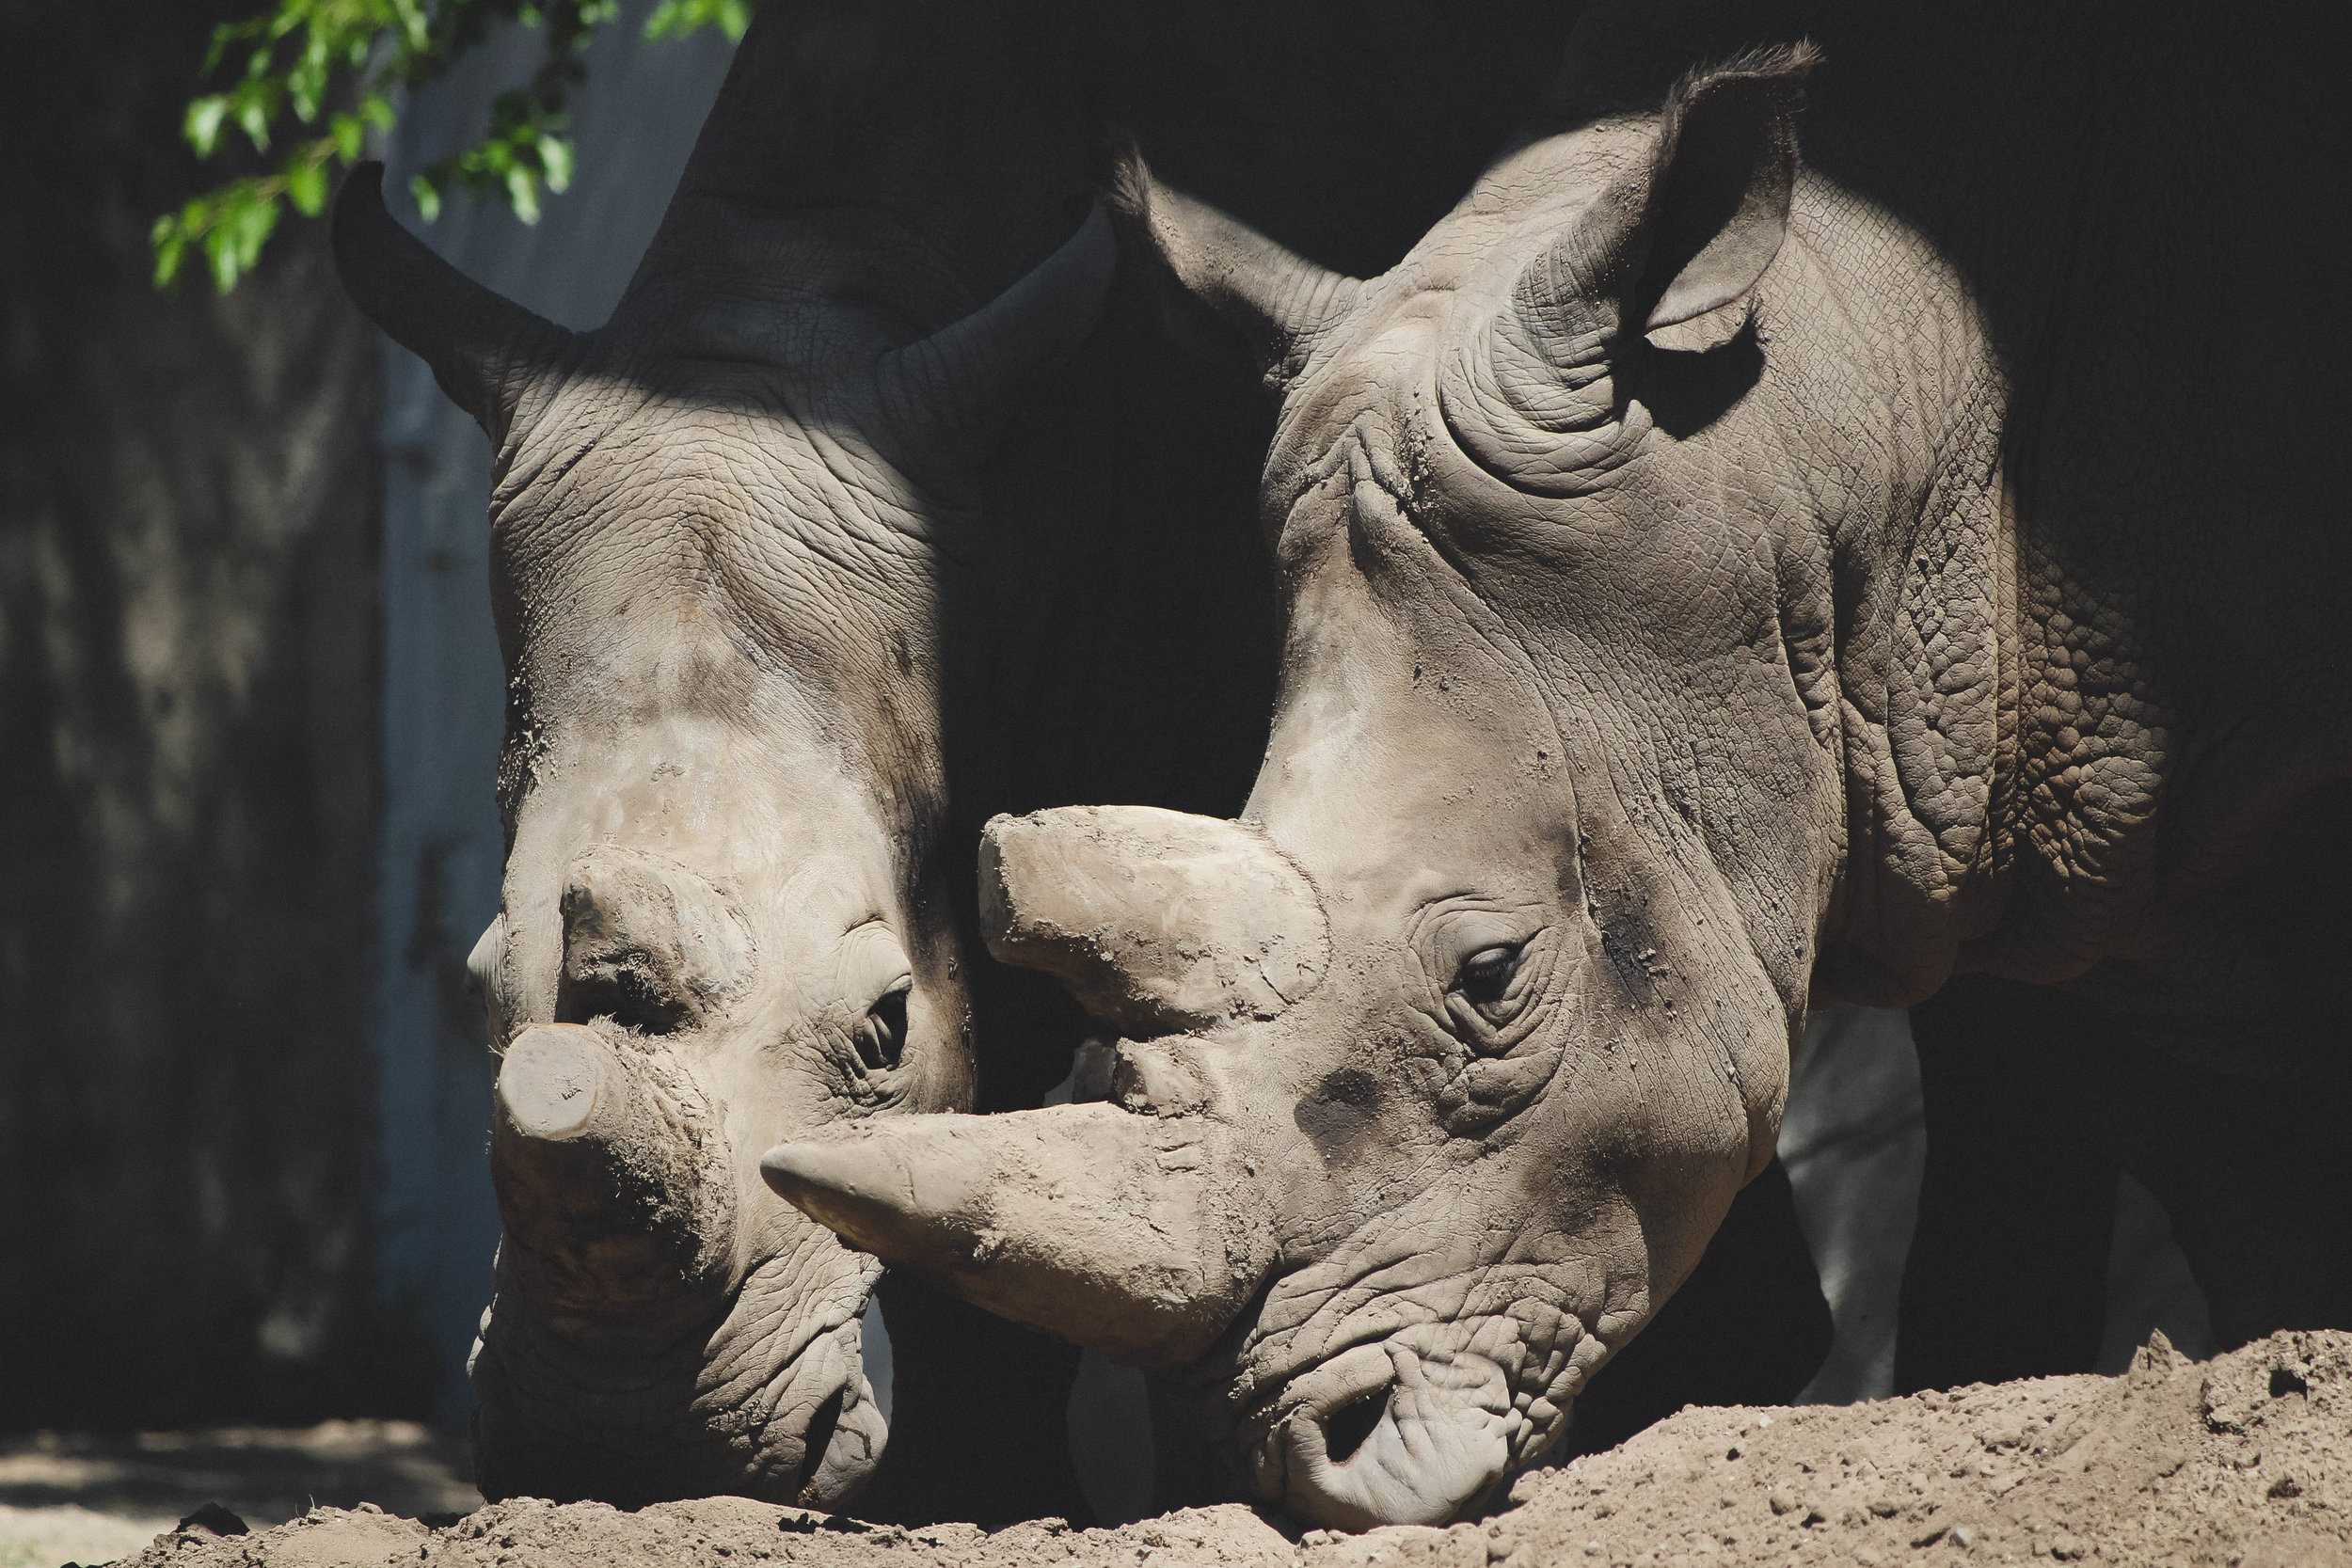 Rhinos at the Detroit Zoo | Image by Taylor Ifland Photography